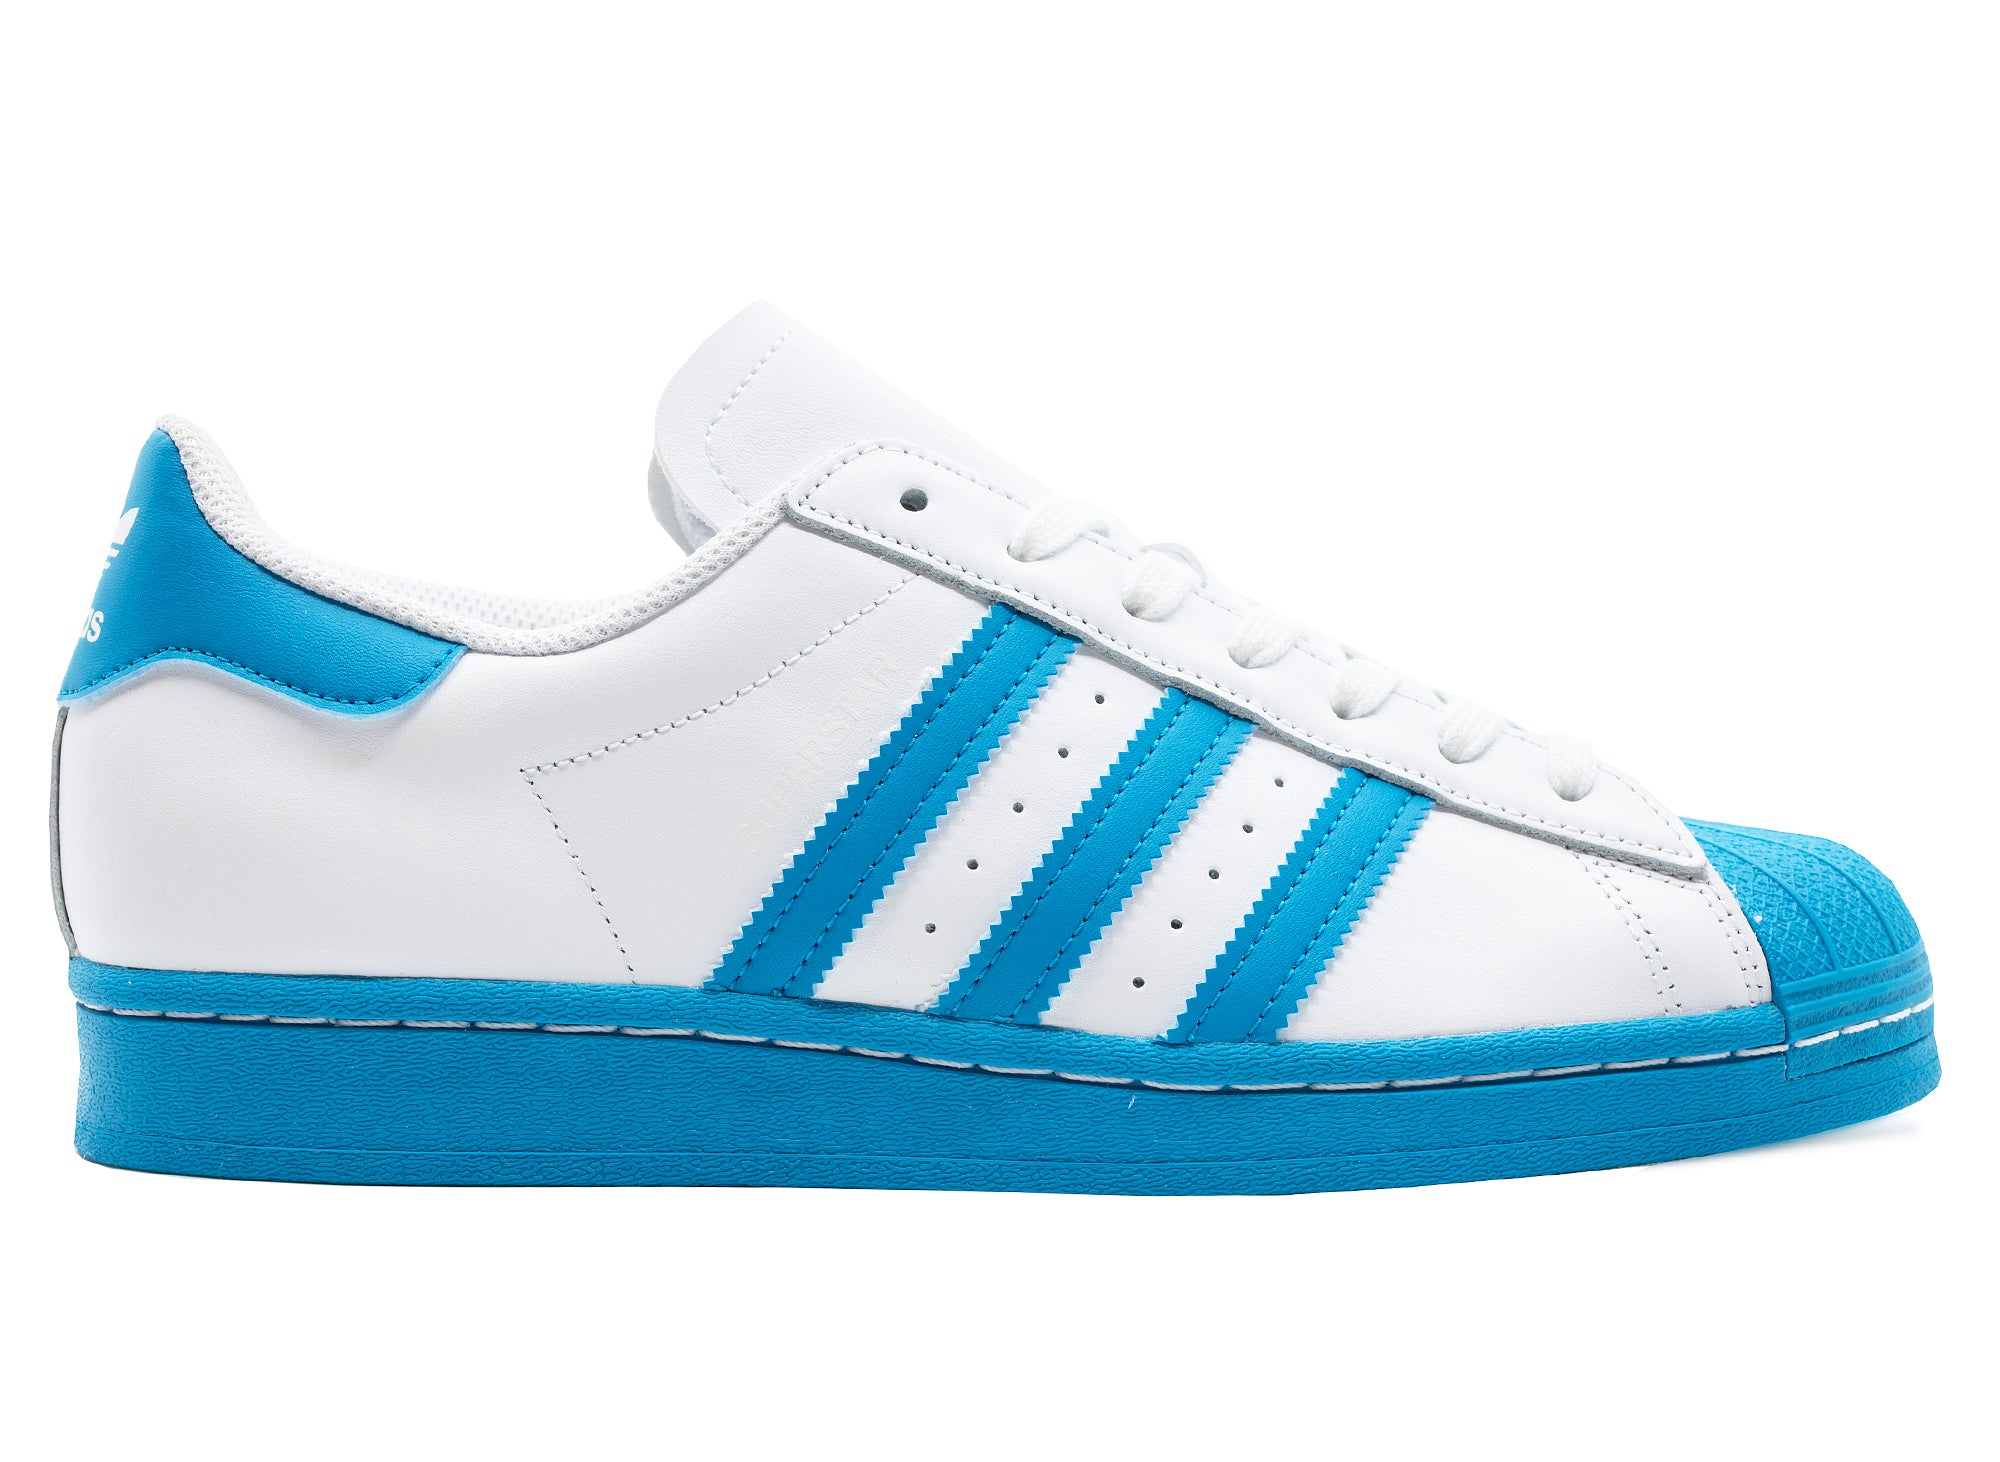 Adidas Superstar Shoes 'Bold Aqua'